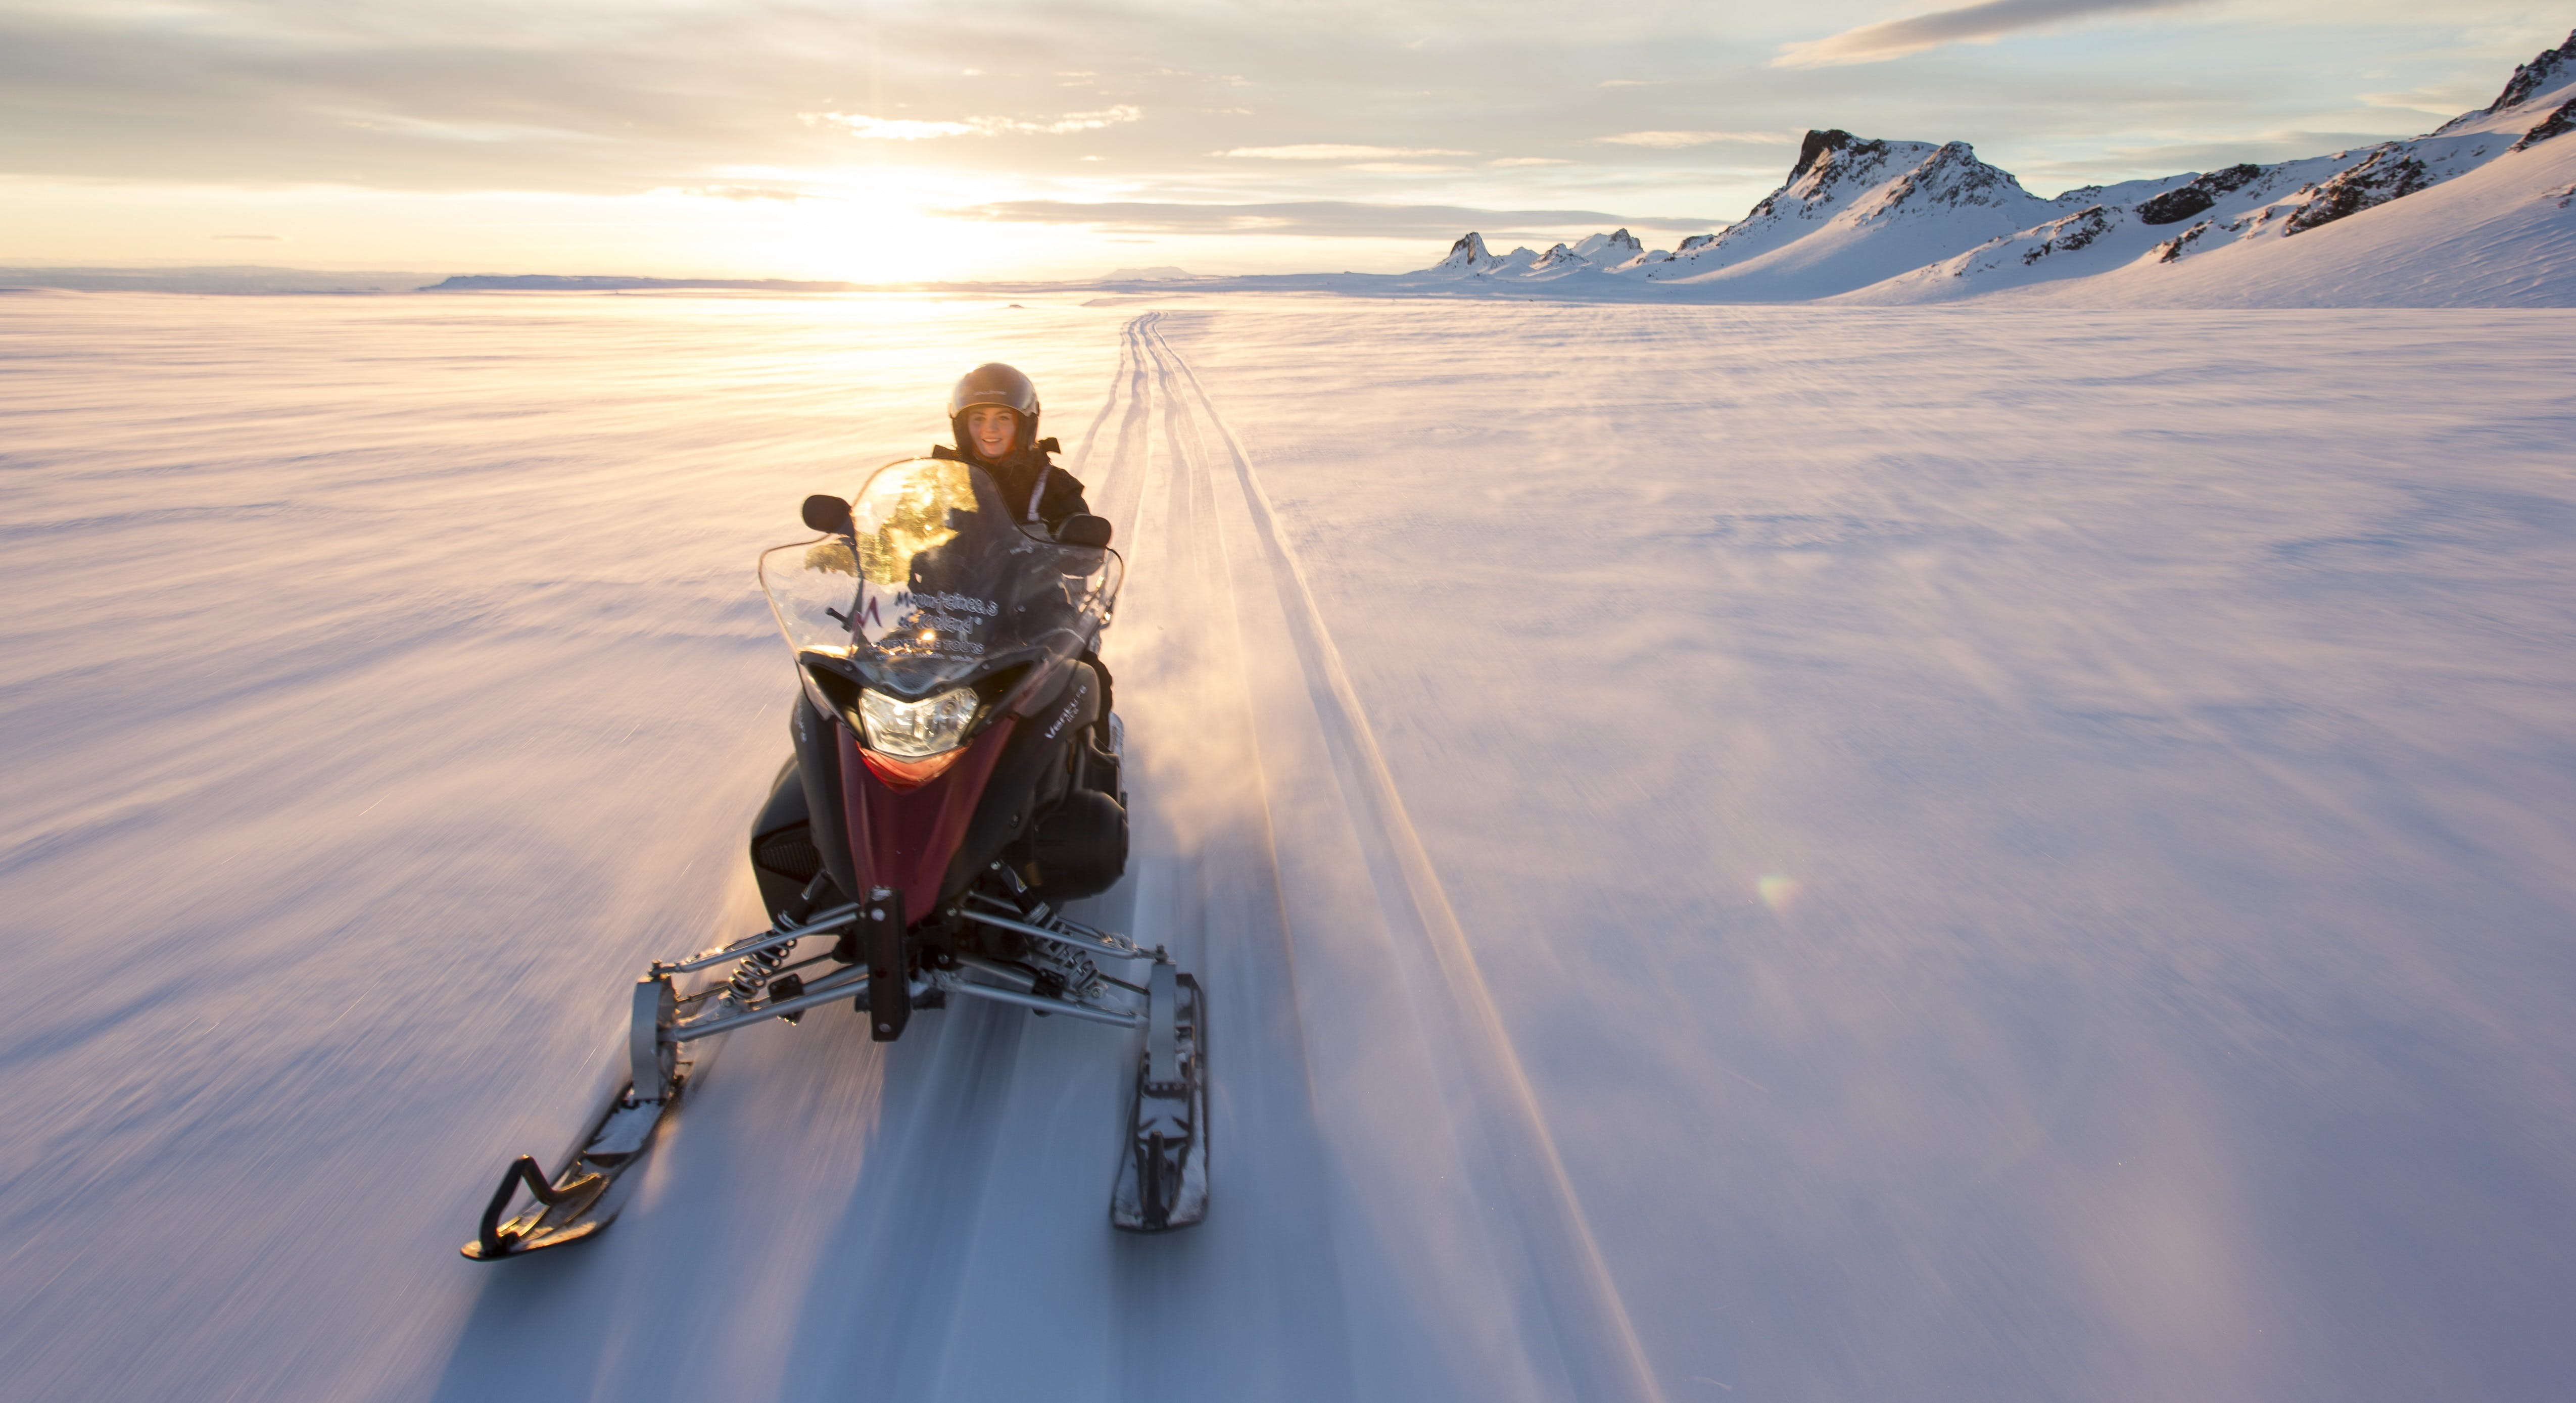 3 in 1 Bundled Discount Tours with Snowmobiling, Glacier Hiking & the Inside the Volcano Experience - day 2